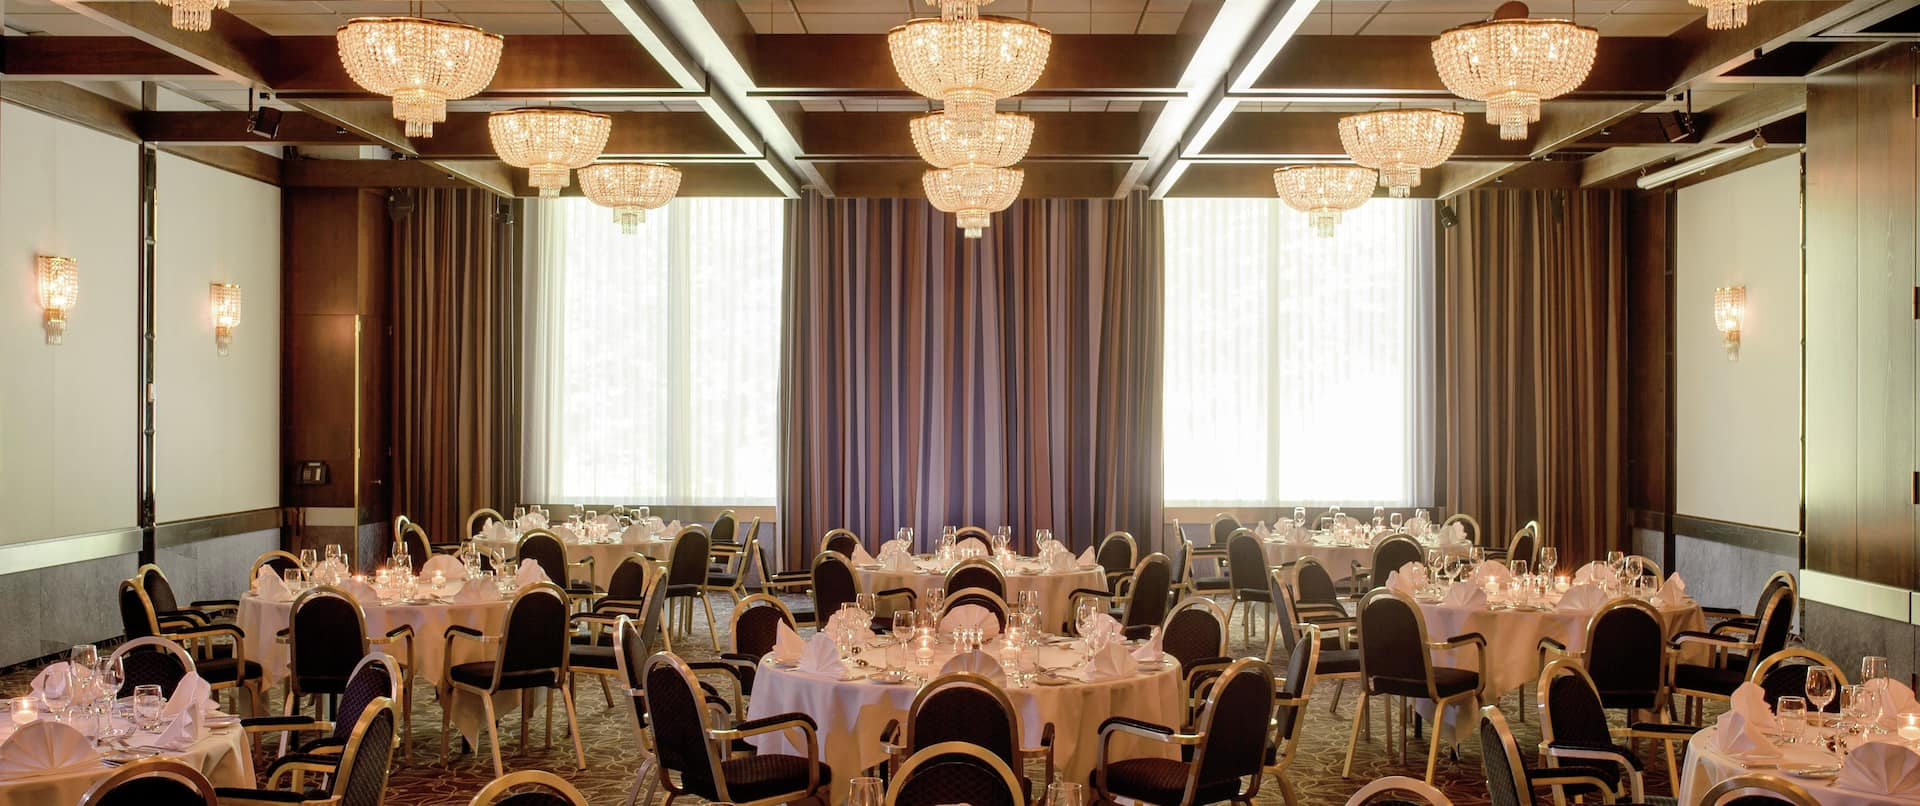 Banquet Room La Place